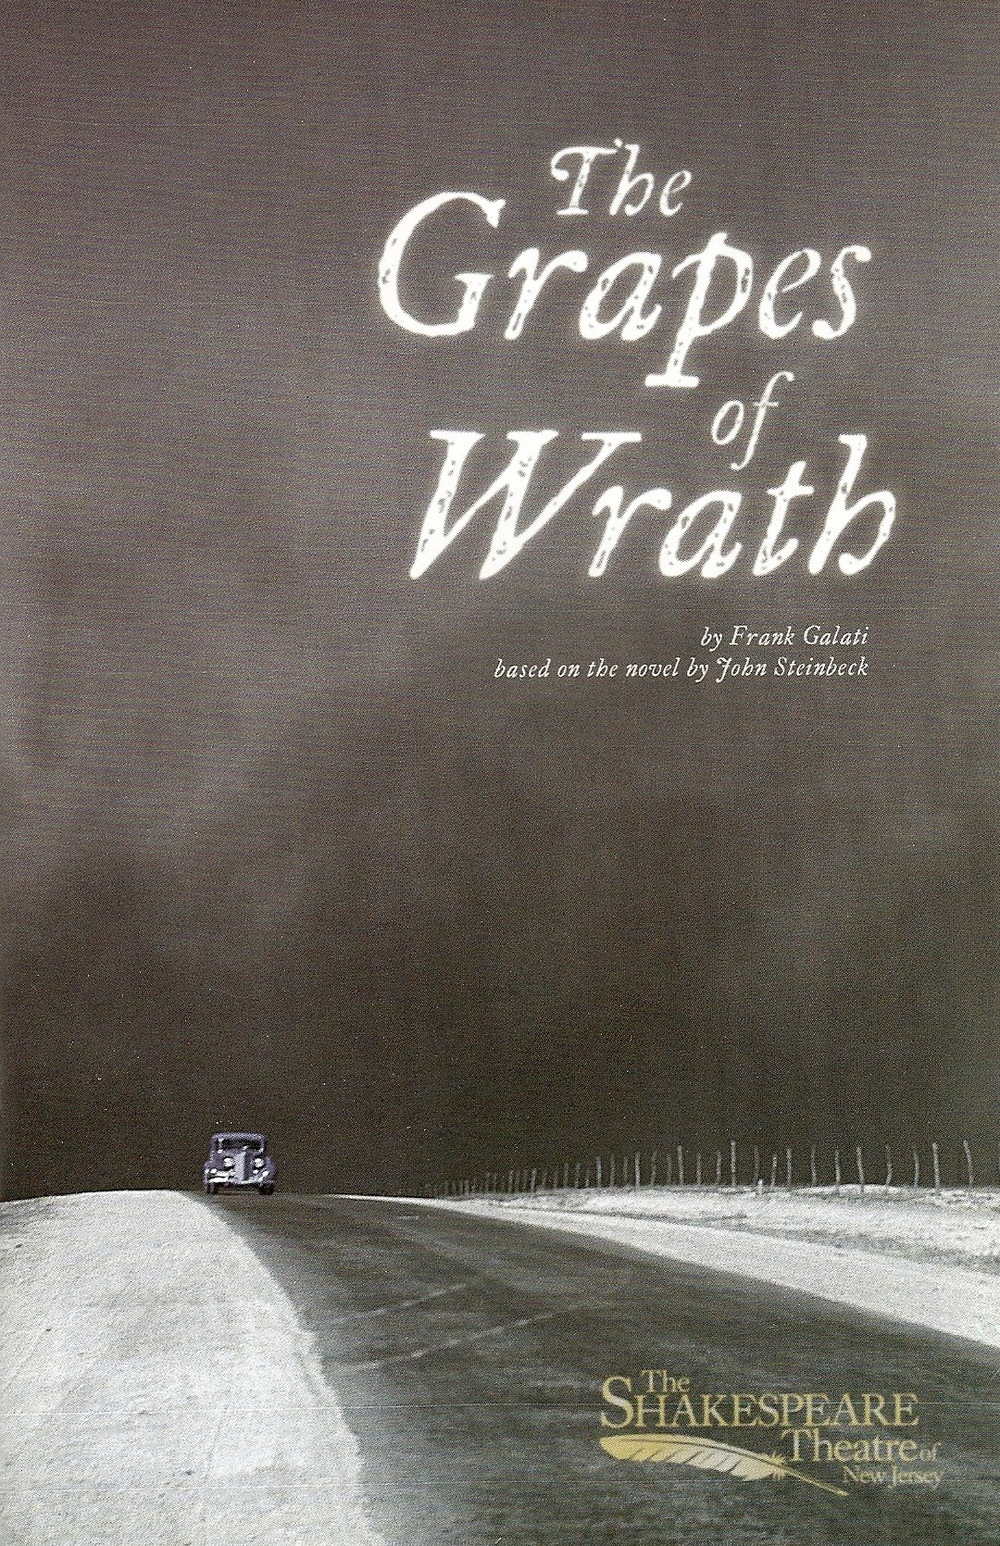 grapesofwrath_cover.jpg